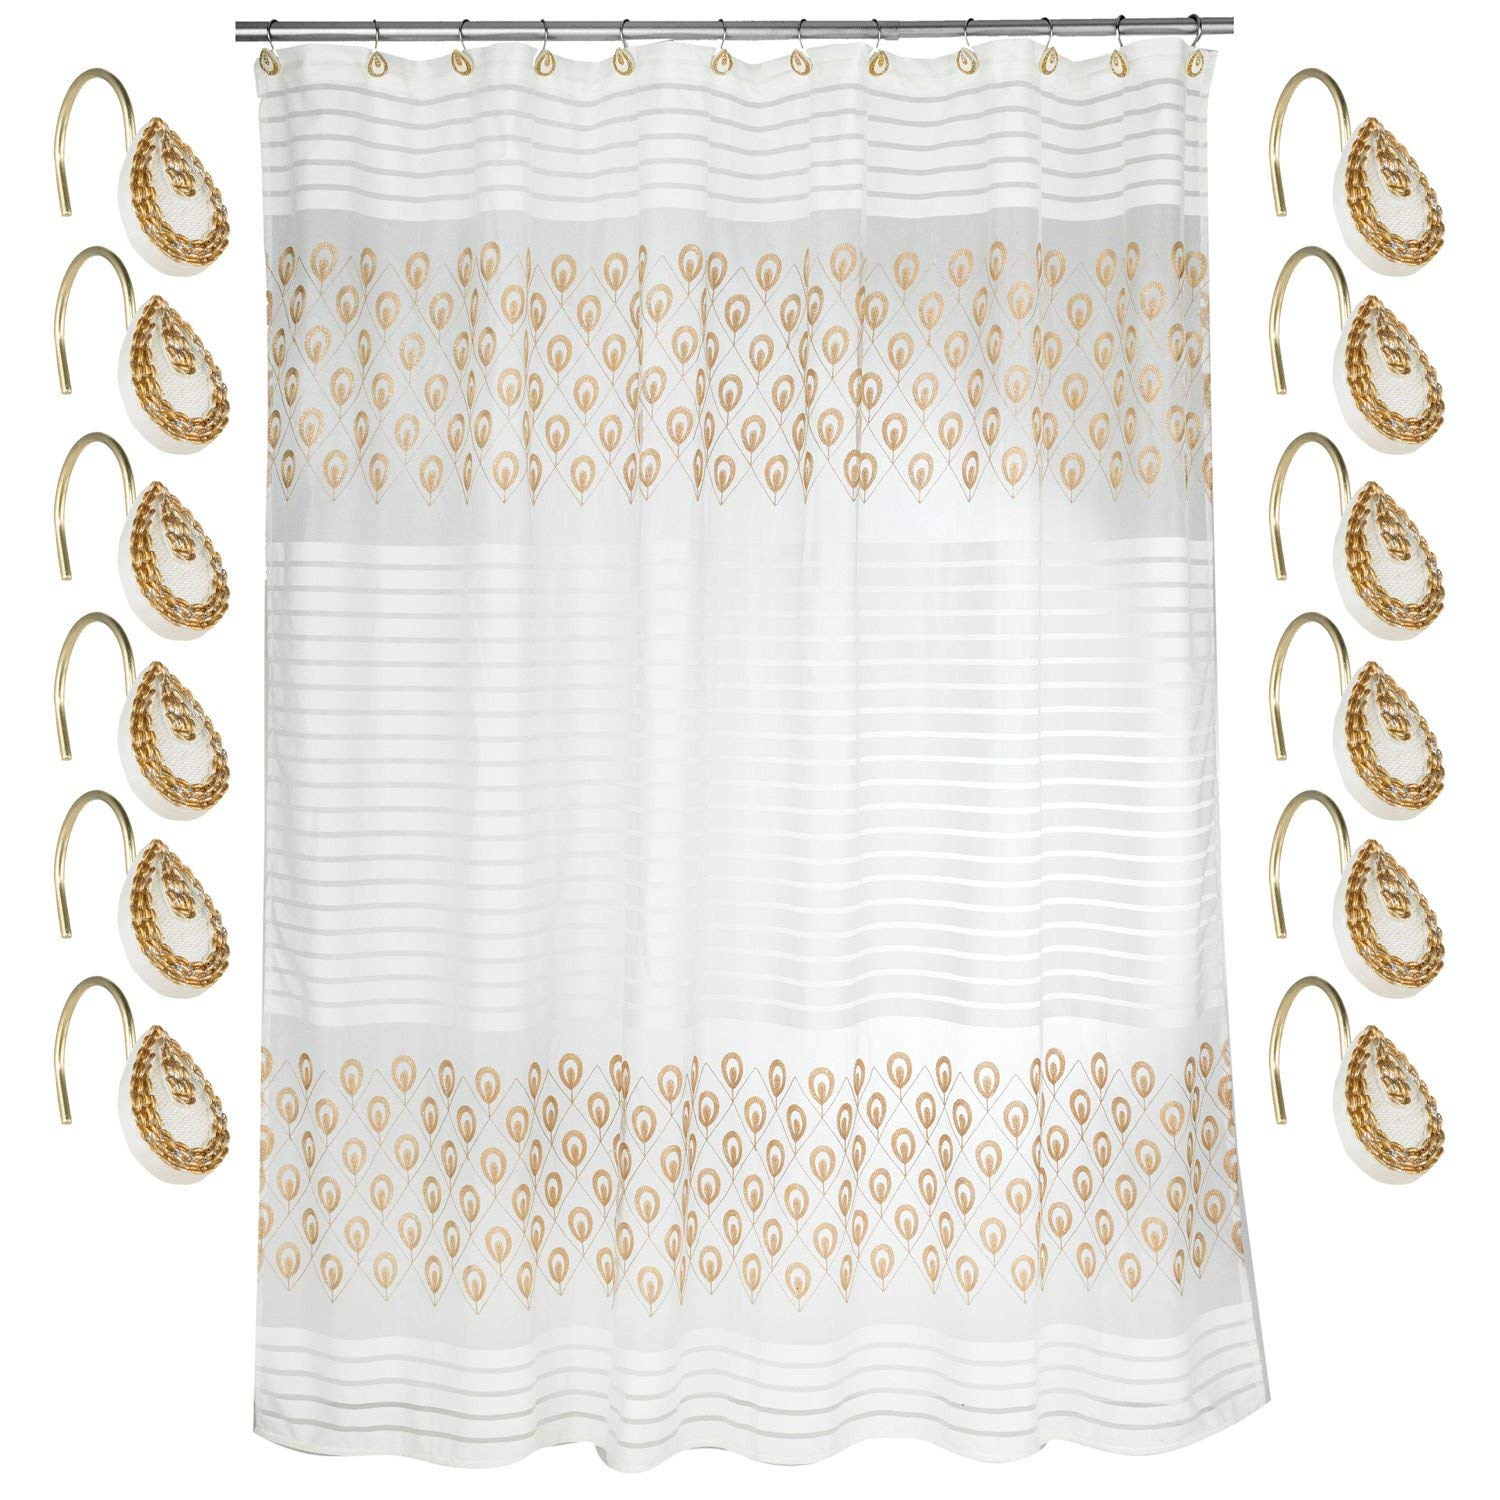 Cheap China Gold Shower Curtain Find China Gold Shower